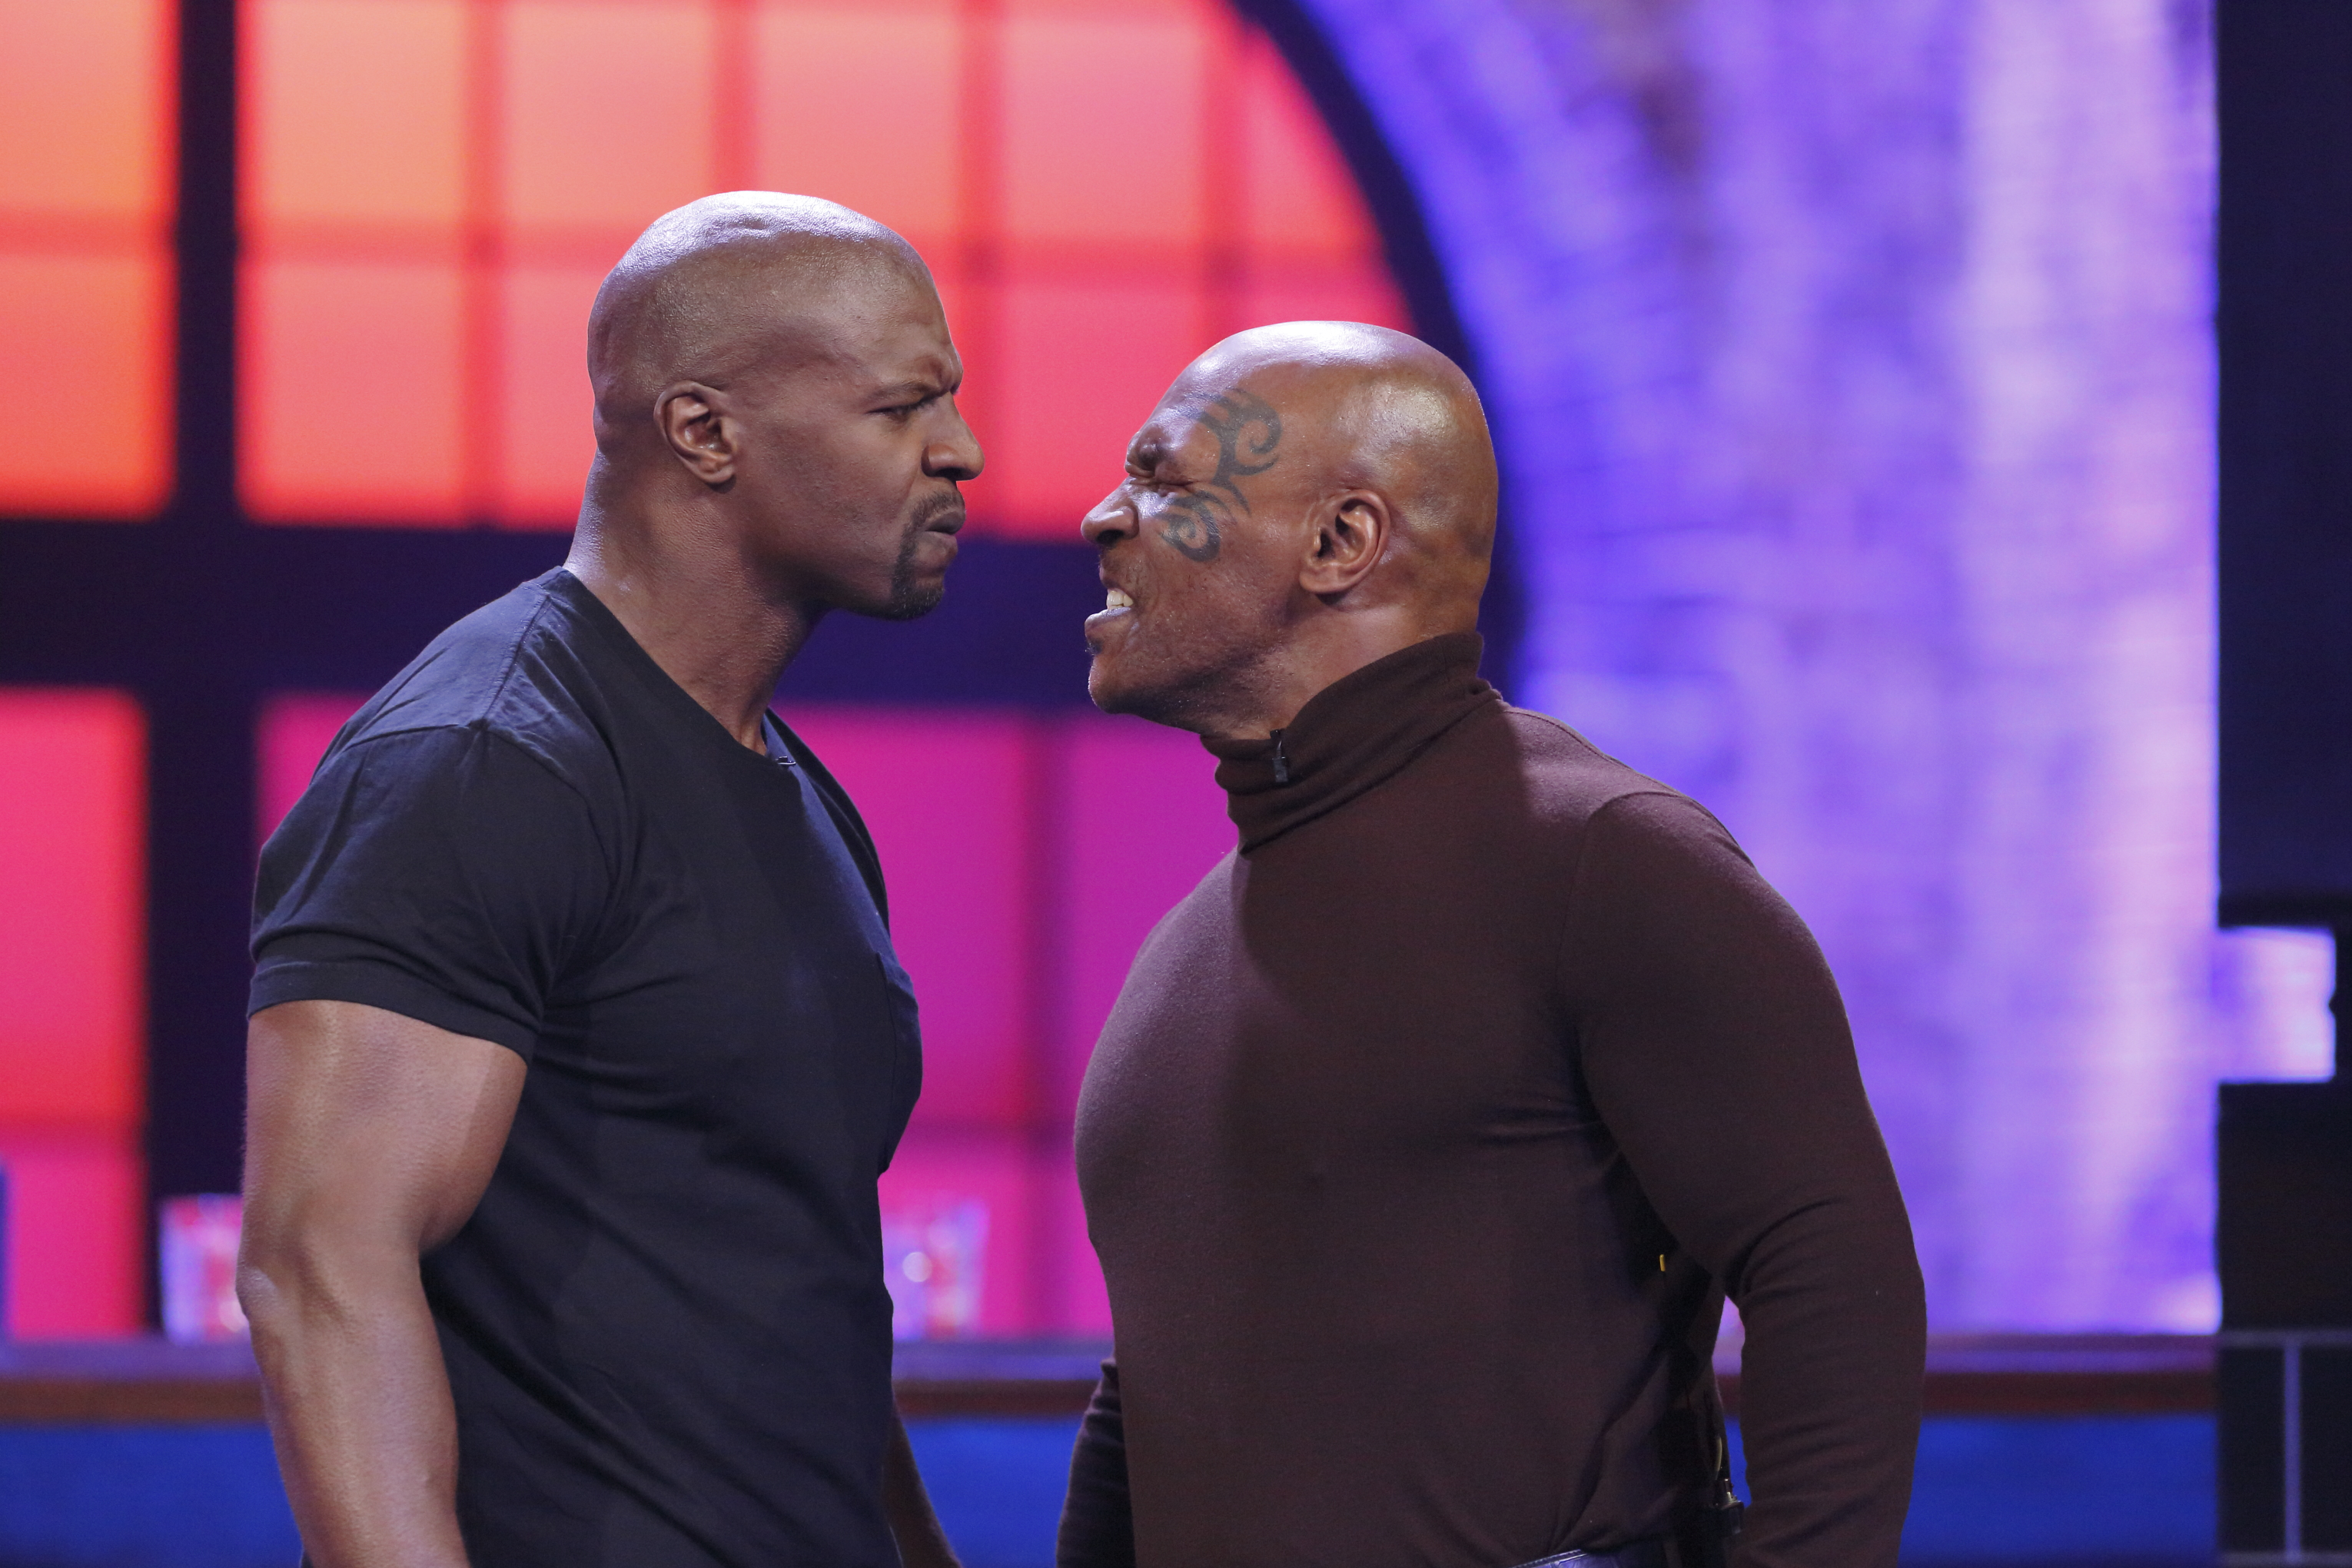 Watch Terry Crews Punch Out Mike Tyson On Lip Sync Battle